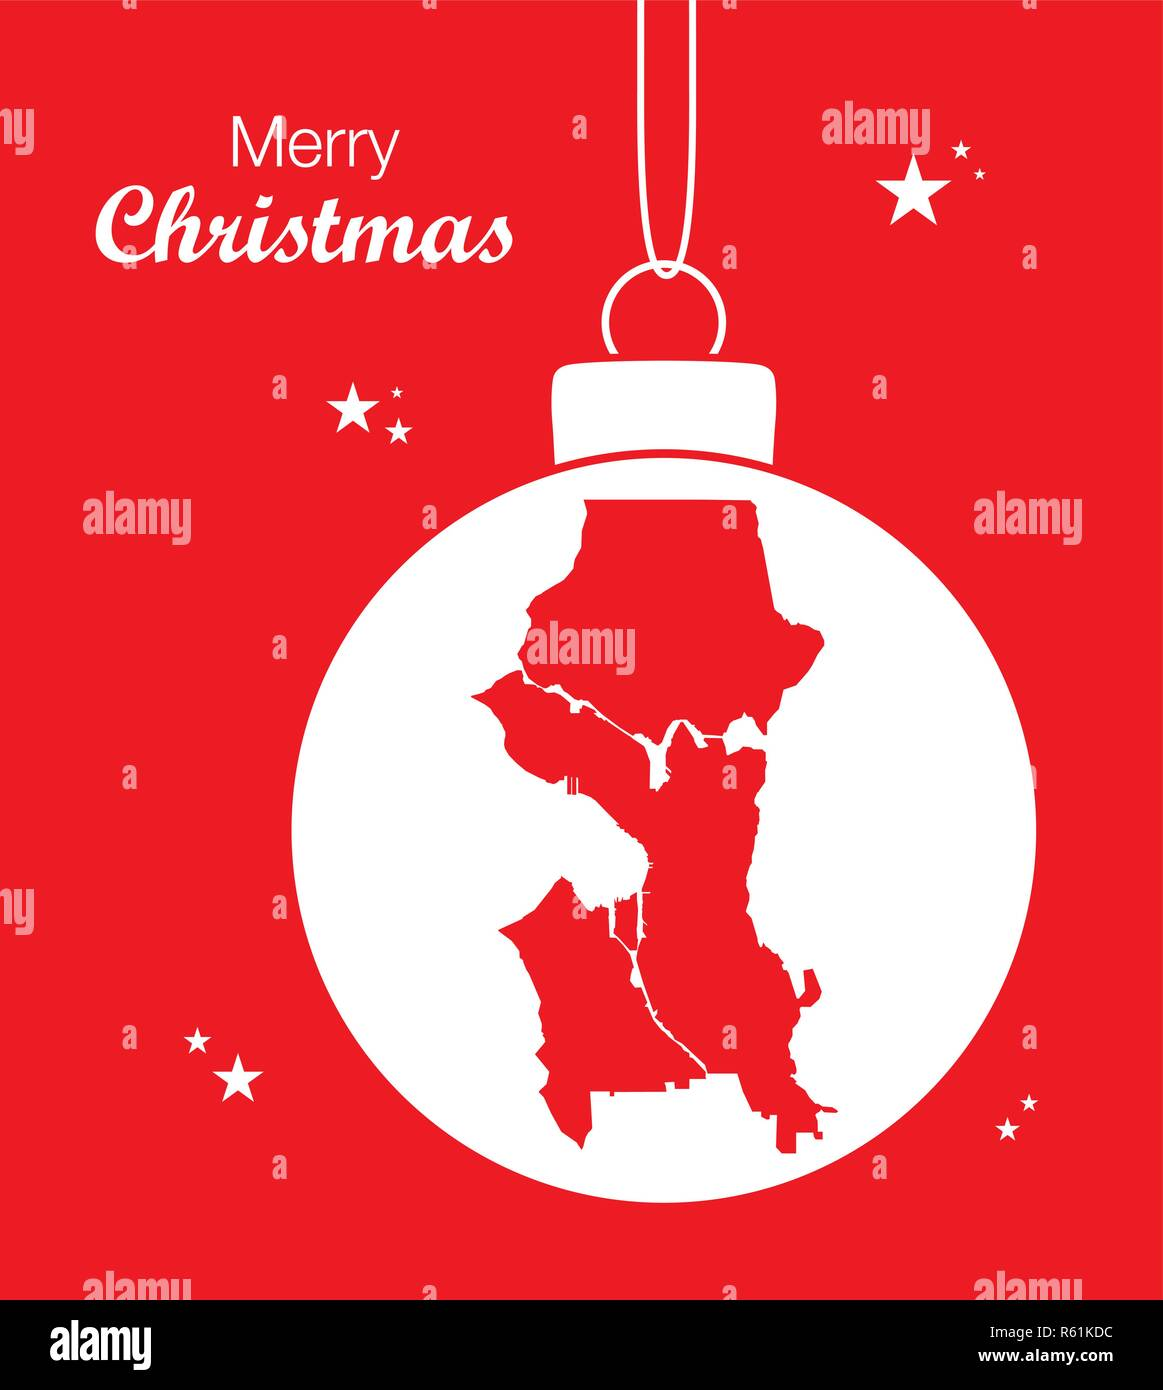 Merry Christmas illustration theme with map of Seattle Washington - Stock Vector